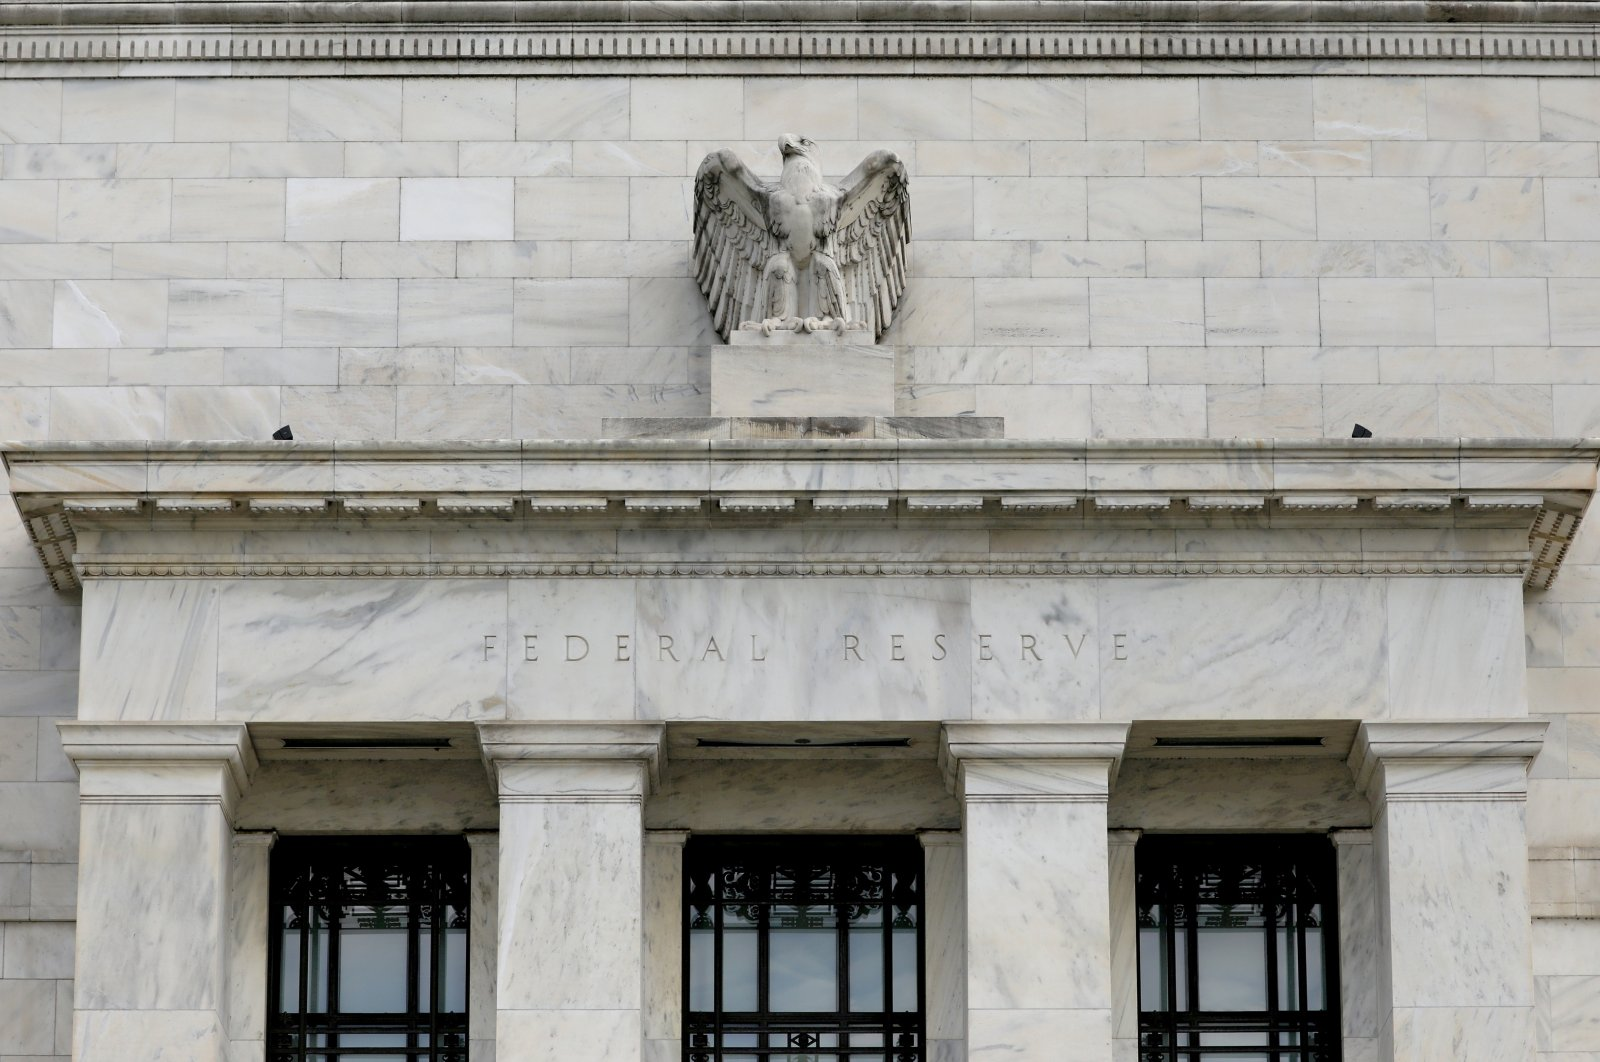 The Federal Reserve building is pictured in Washington, D.C., U.S., Aug. 22, 2018. (Reuters Photo)